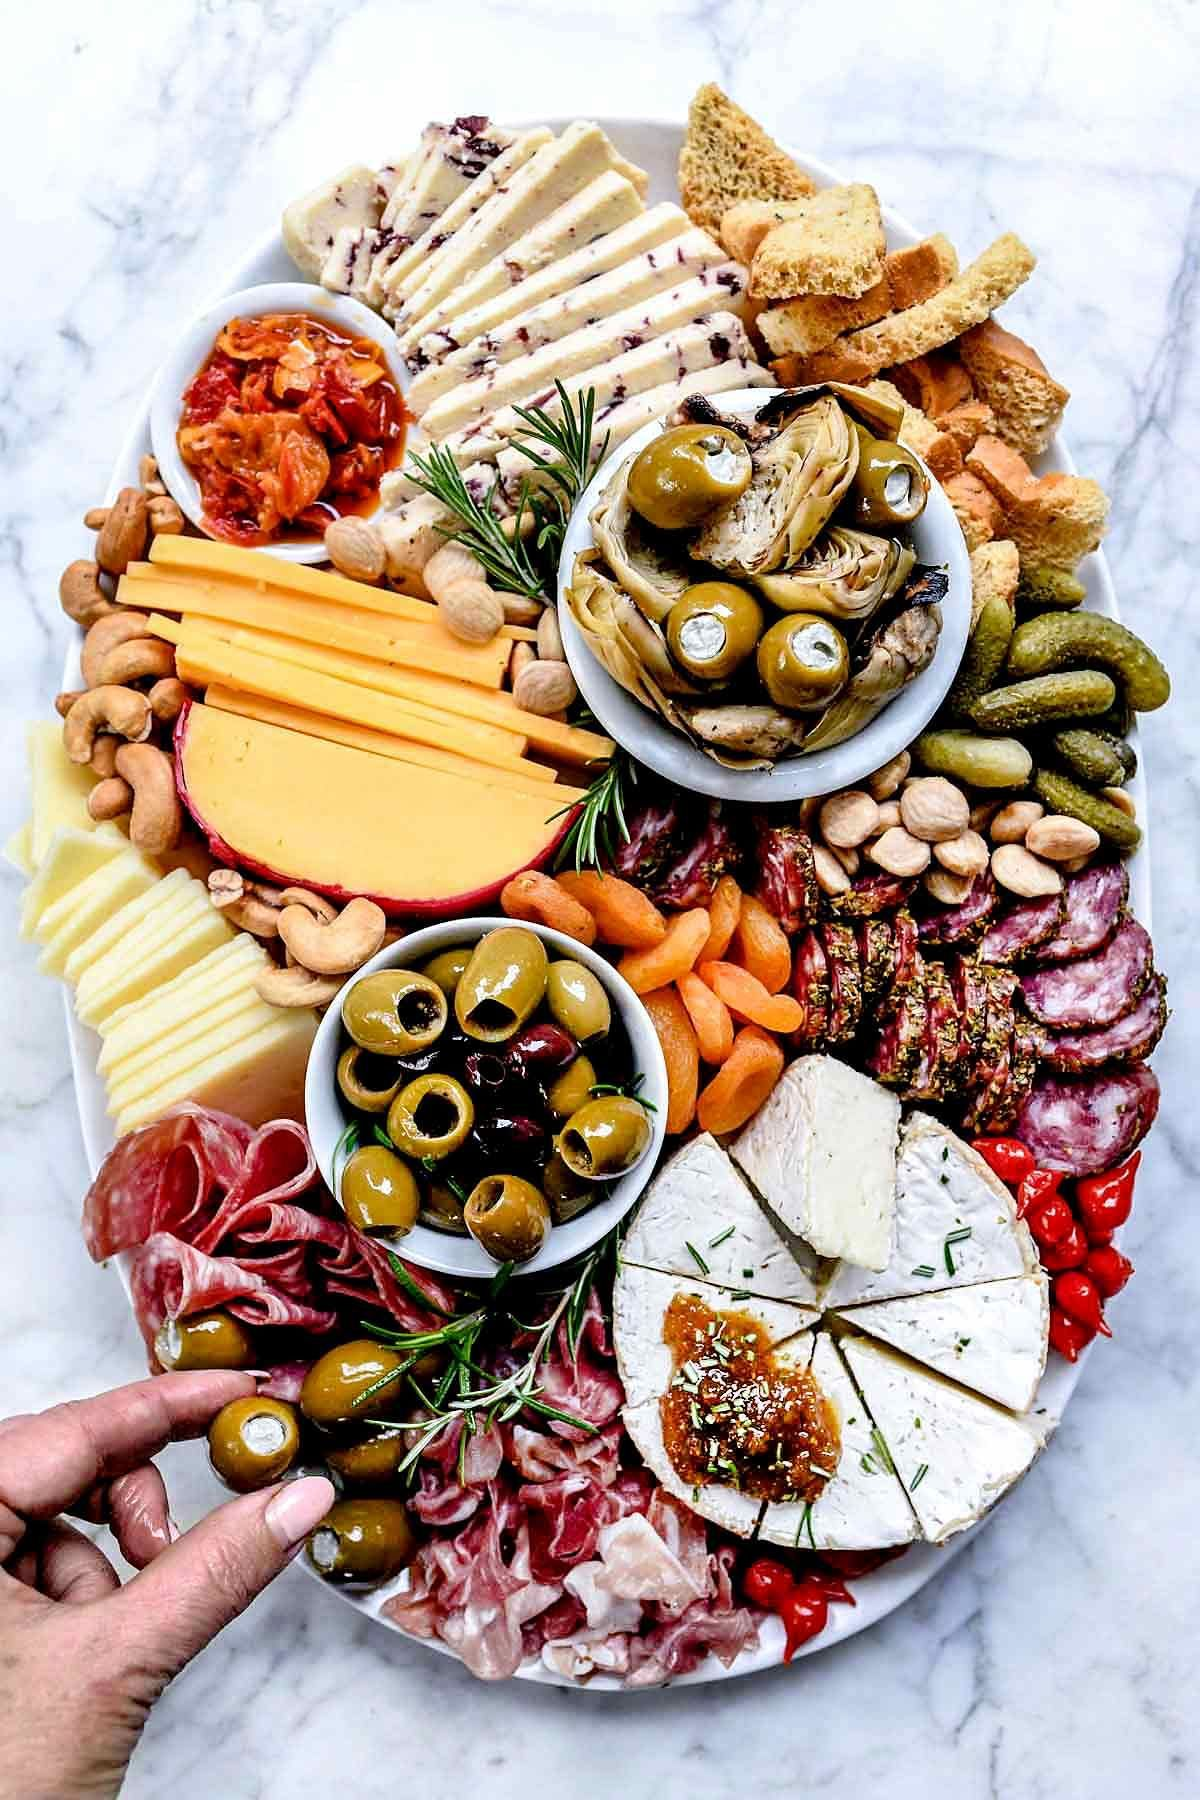 Photo of How to Make an Instagram-Worthy Charcuterie Board | foodiecrush.com #charcuterie…